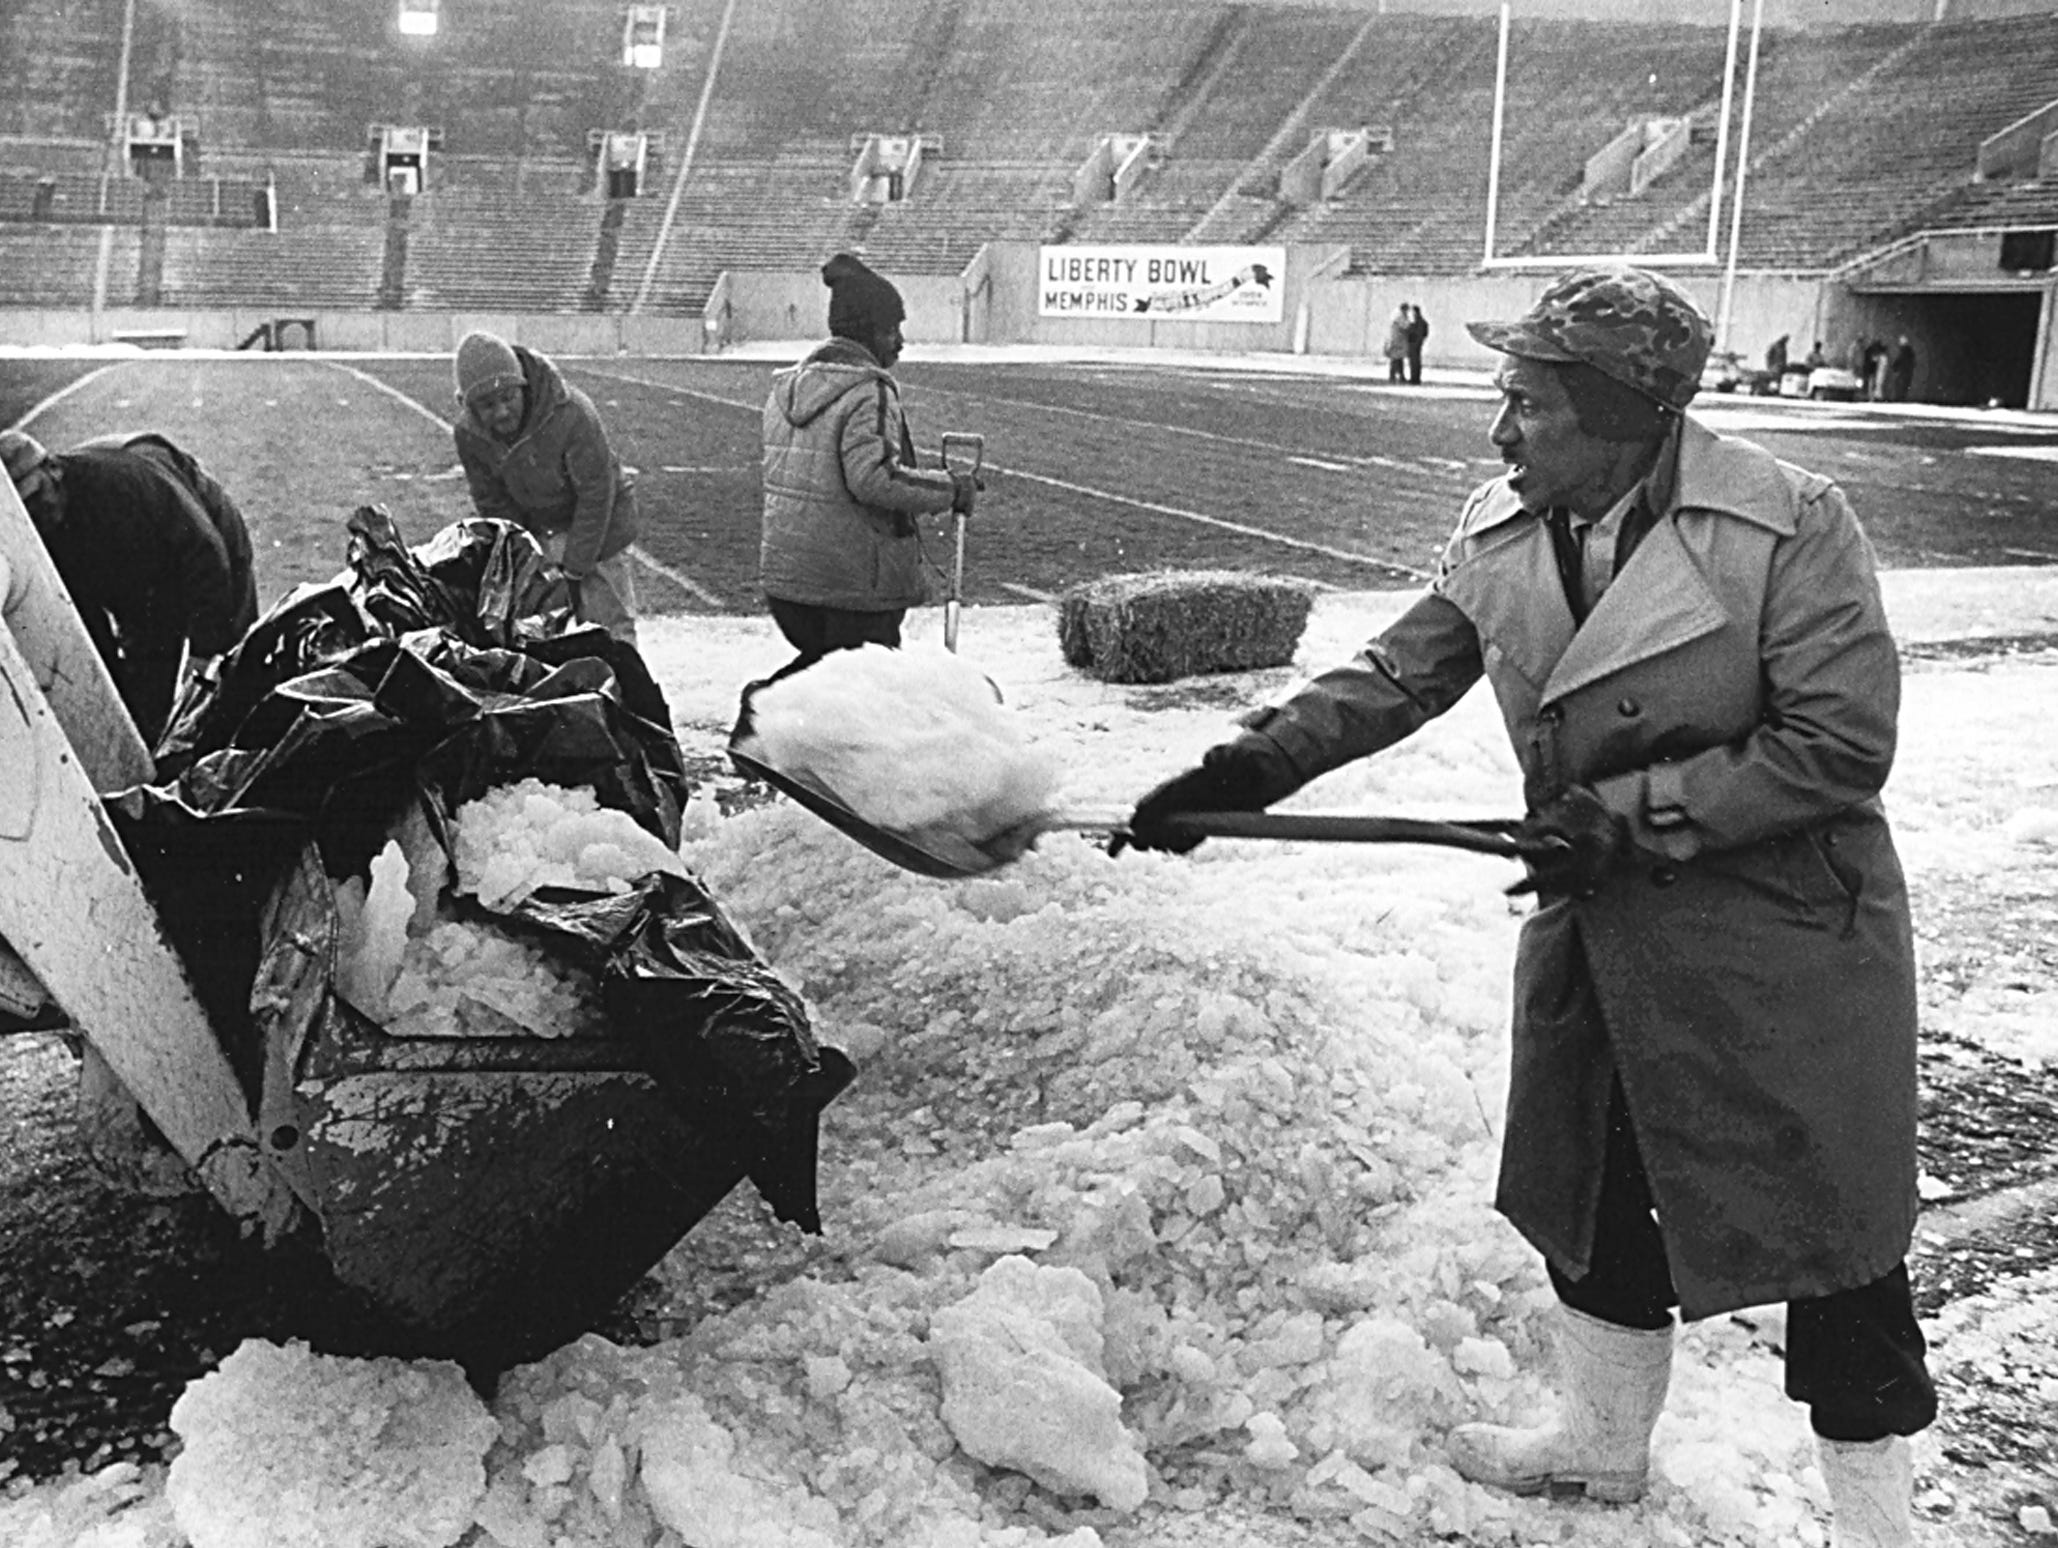 Park Commission employees cleared ice from the field at Liberty Bowl Memorial Stadium all day long on Dec. 29, 1983, in preparation for the annual postseason football game. George Powell (third from right), Roosevelt Golden (second from right) and Phillip Jackson (right) had been working since 7 in the morning. The photograph was taken at 4:30 in the afternoon. The two men at extreme left are not identified. They managed to get the job done and Notre Dame got their job done, beating Boston College 19 to 18.